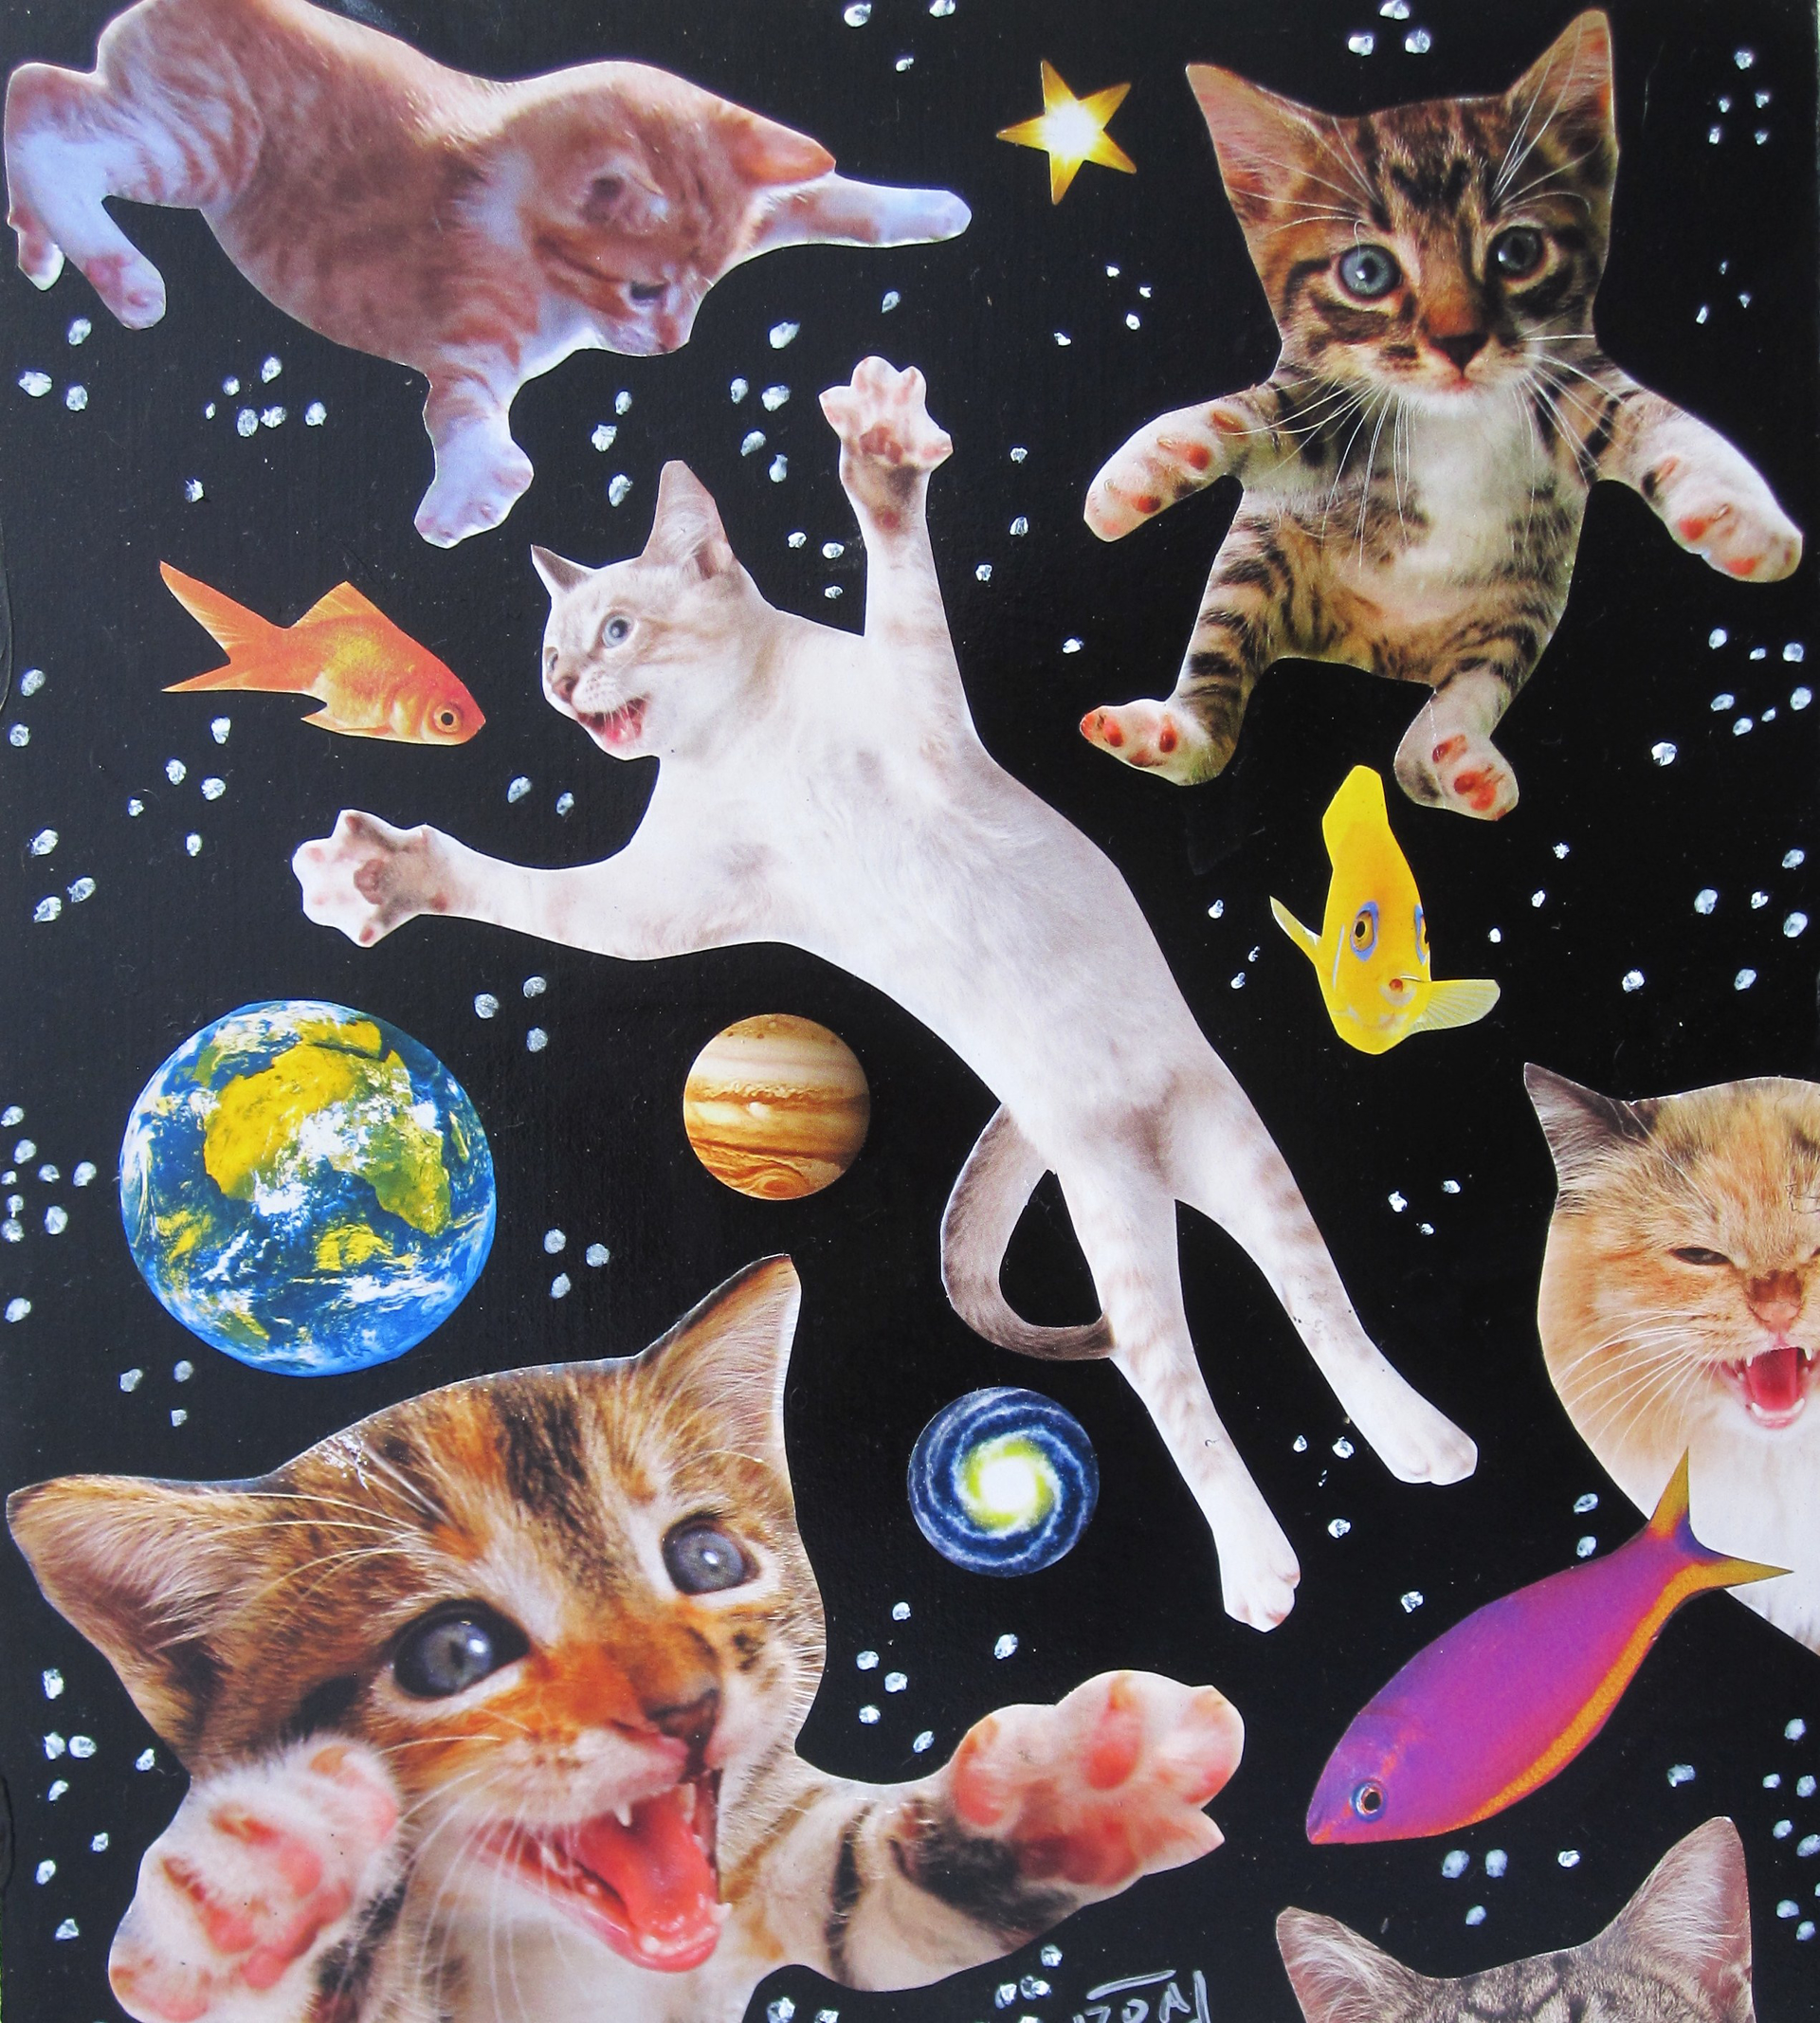 Space Cats #2 by Zoa Ace